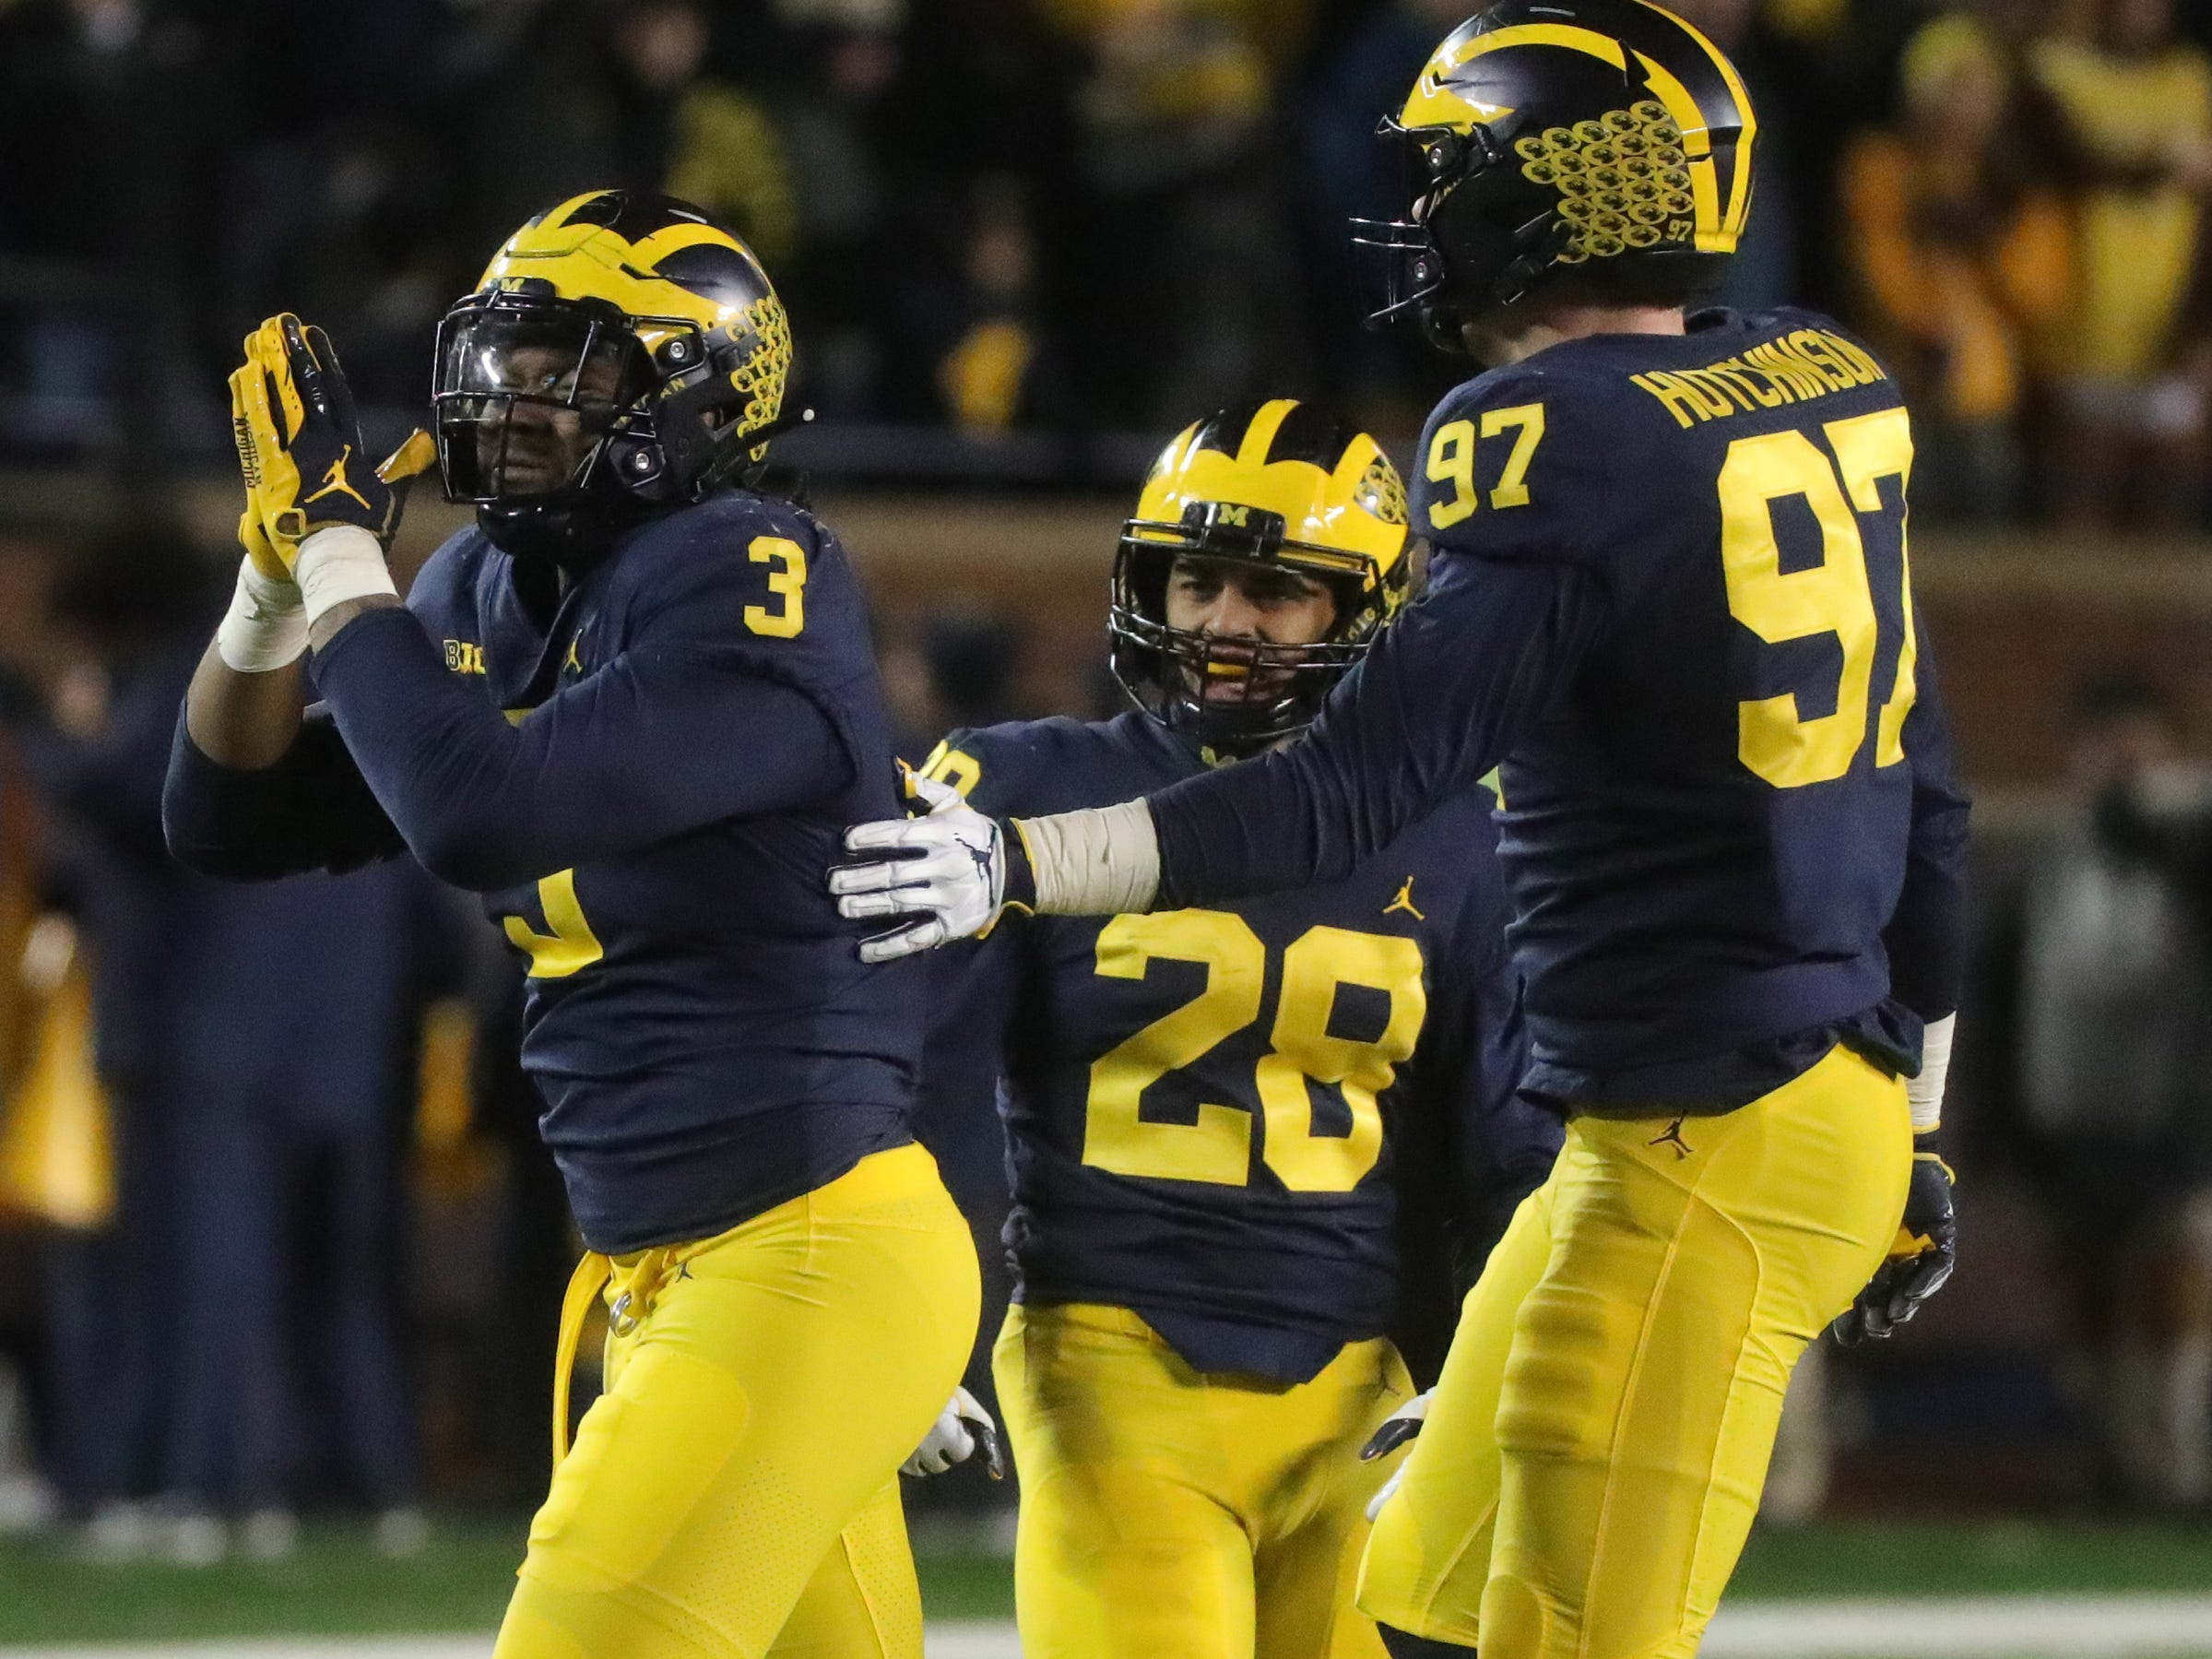 4. Michigan (10-1) | Last game: Defeated Indiana, 31-20 | Previous ranking: 4